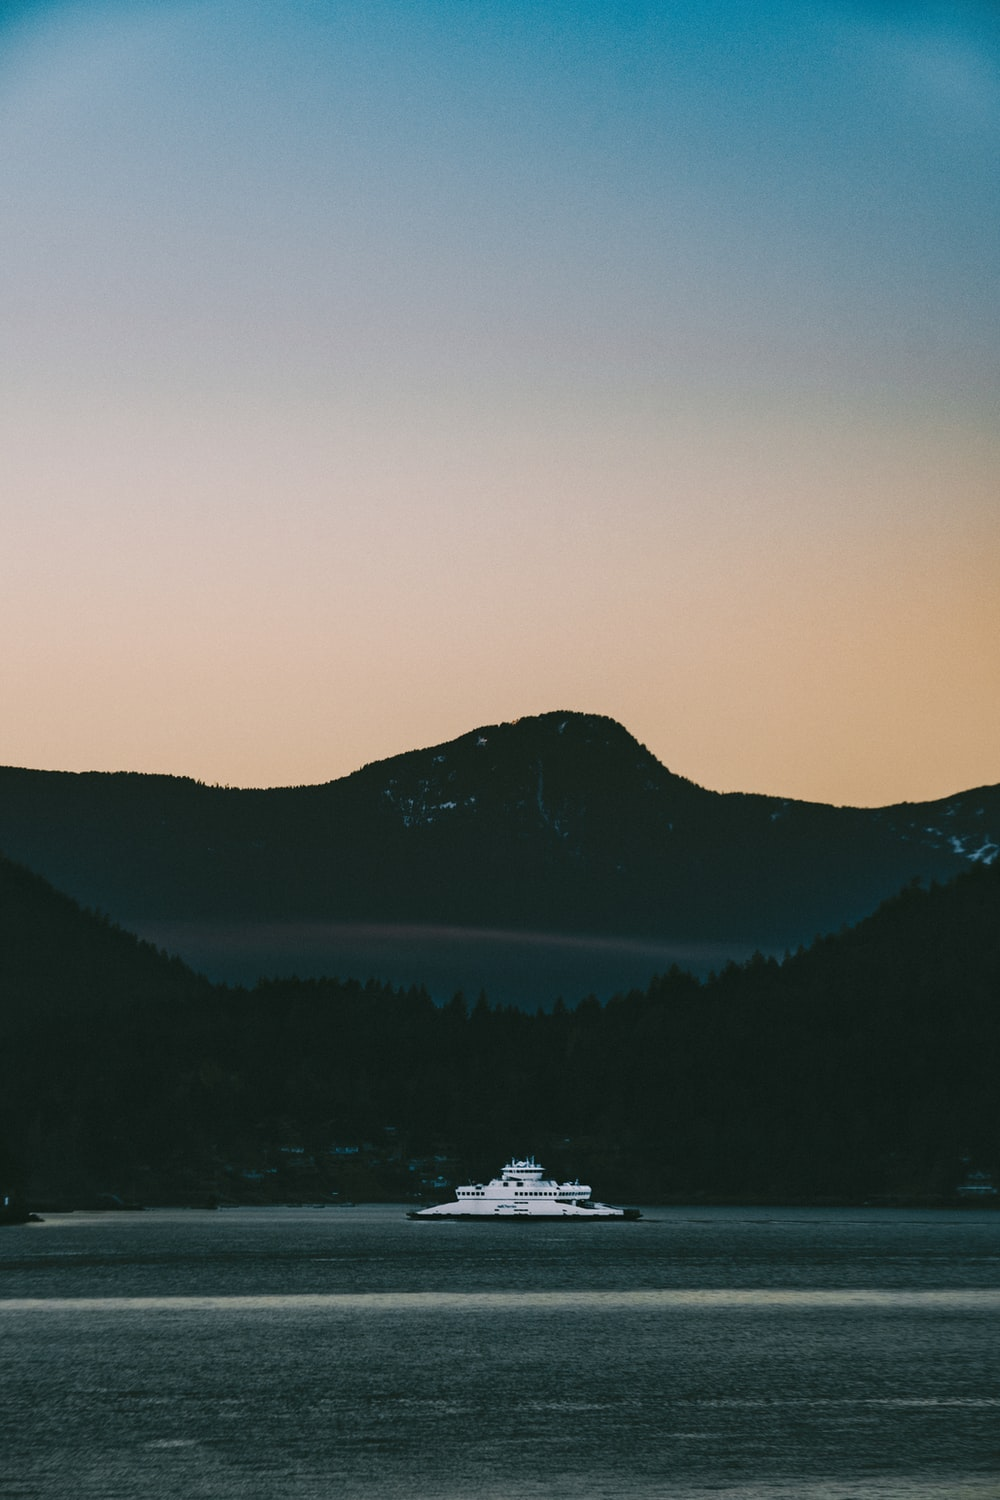 white boat on water near mountain during daytime